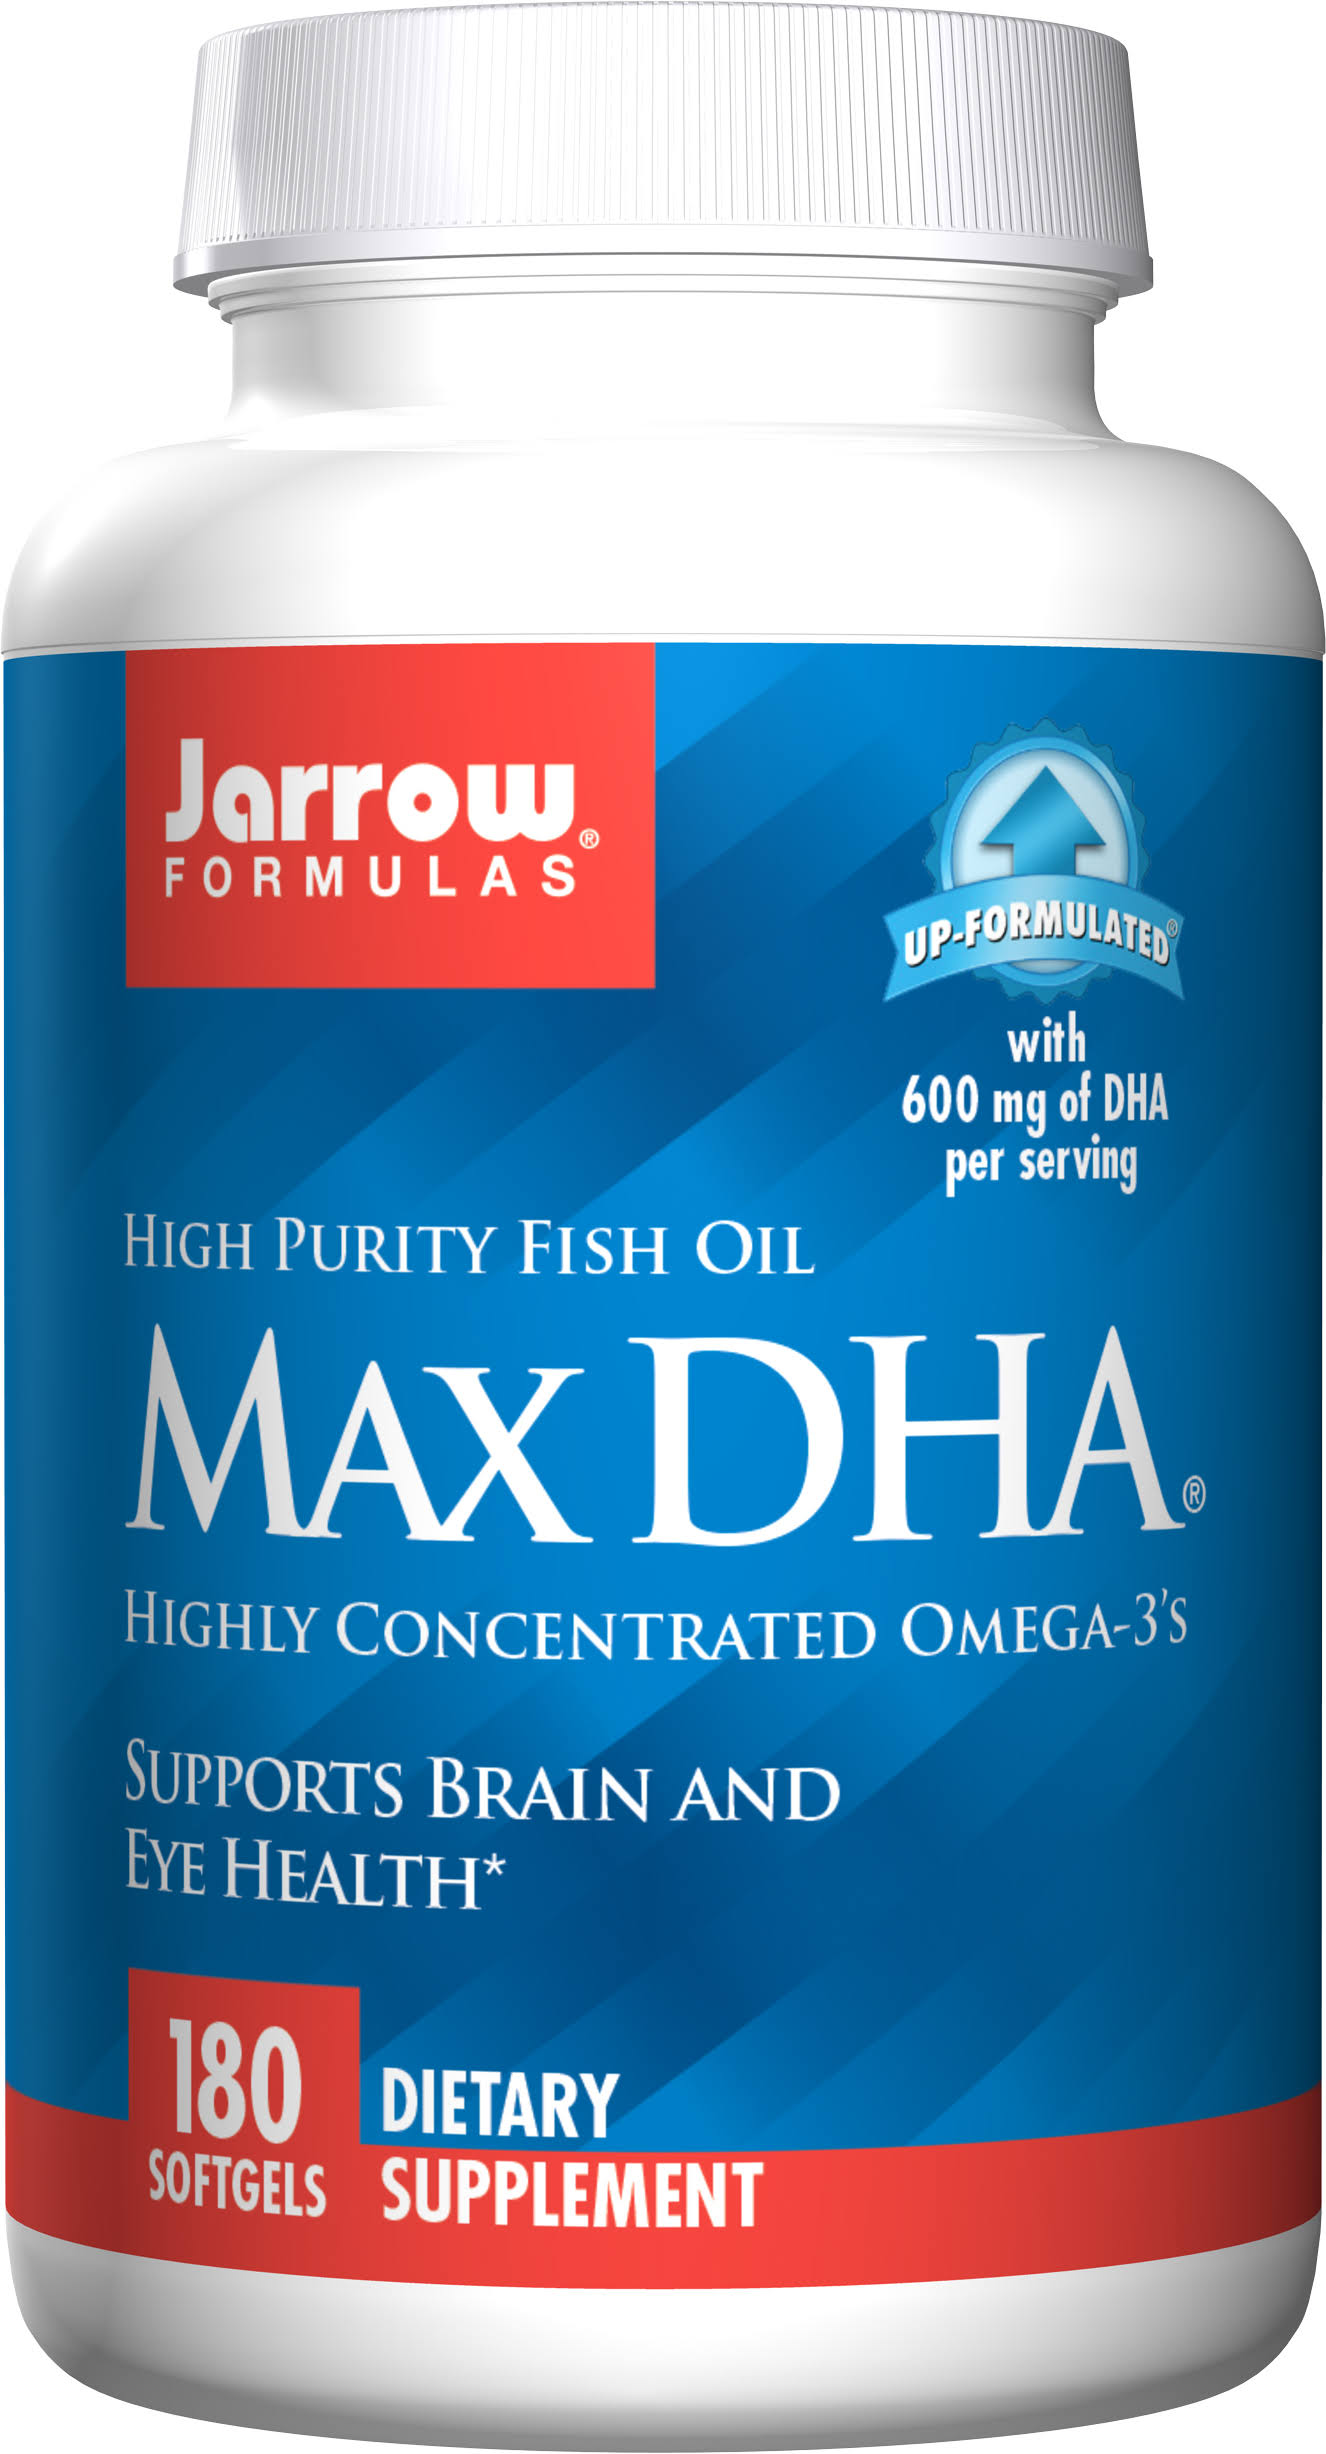 Jarrow Formulas Max DHA - 400mg, 180 Softgels